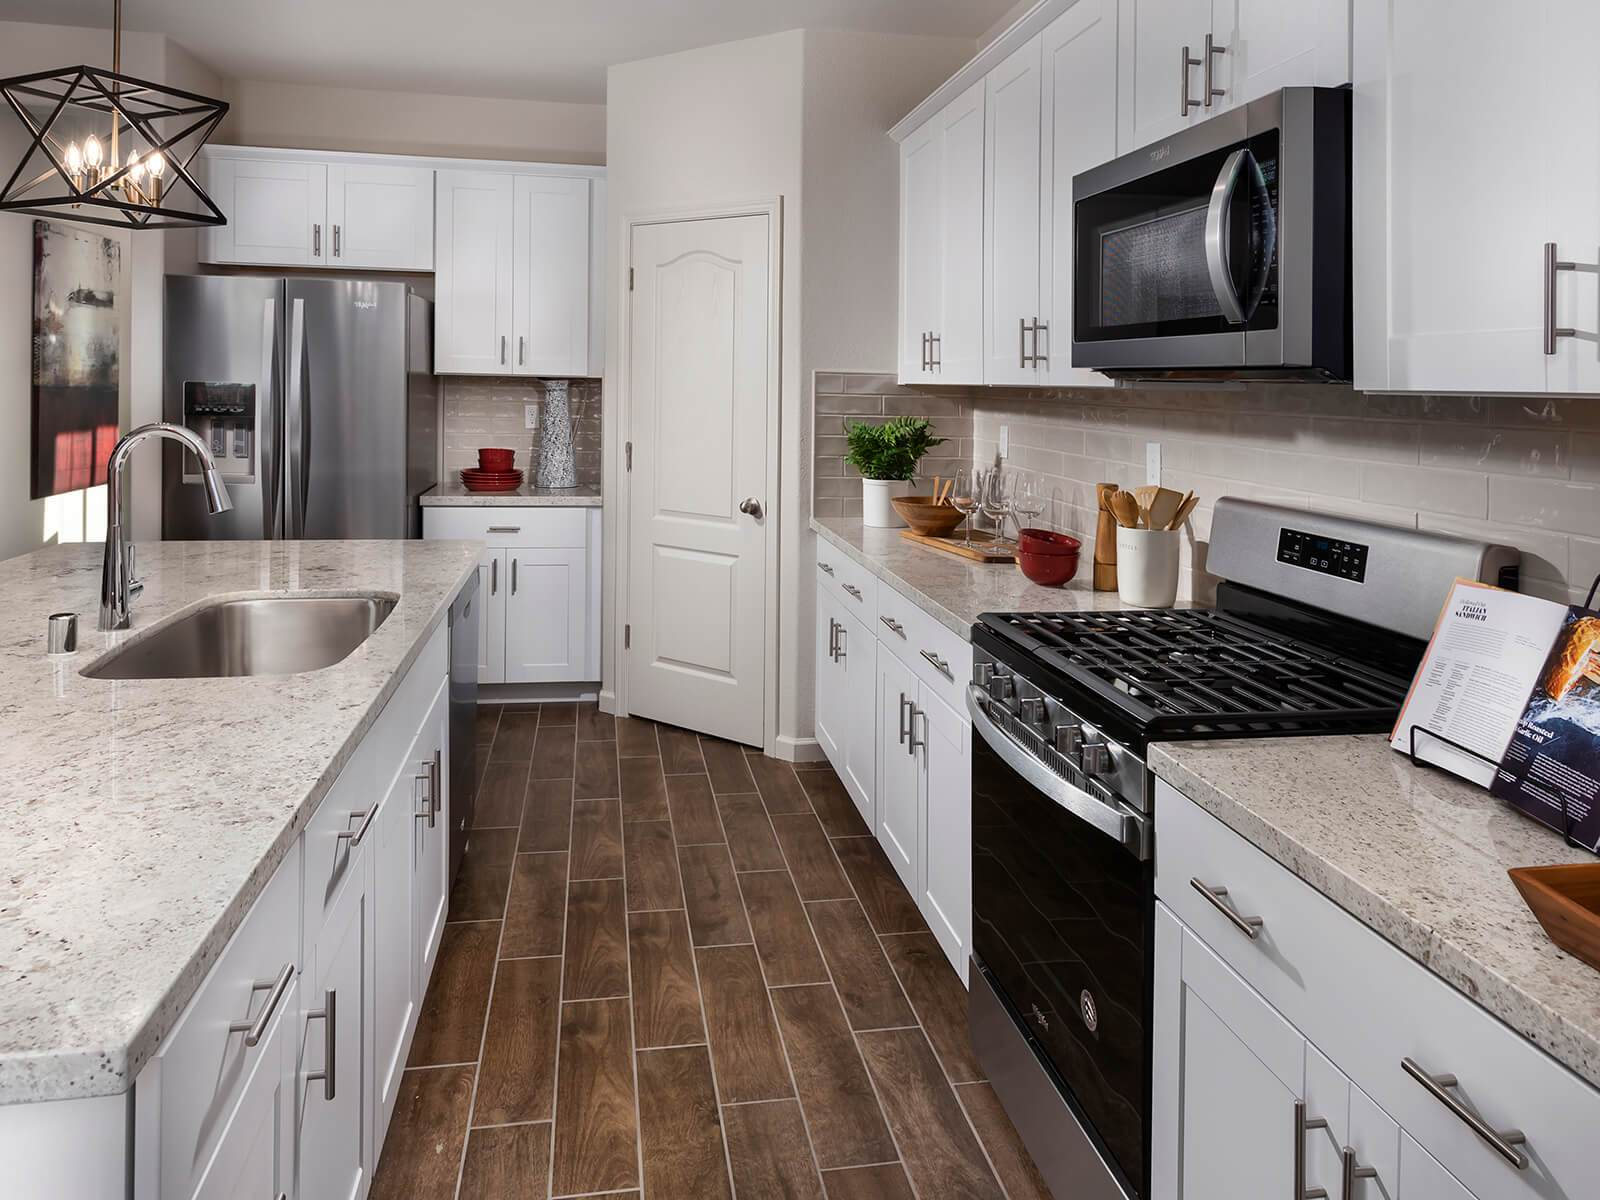 Kitchen featured in the Residence 3 By Meritage Homes in Oakland-Alameda, CA